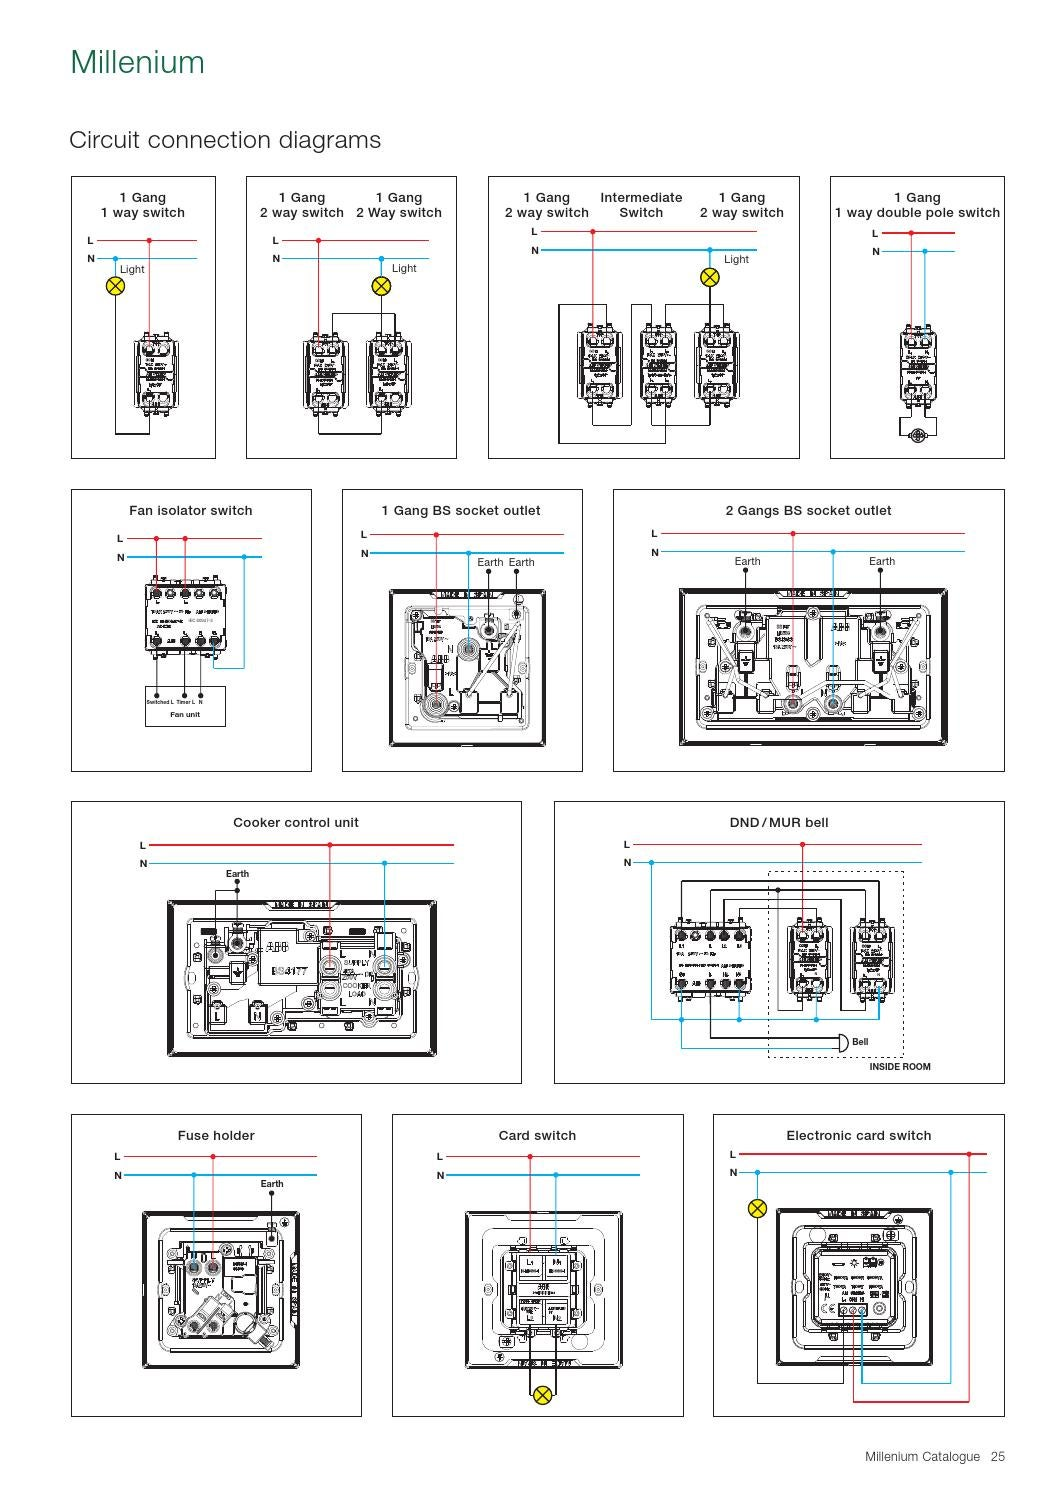 Ig Receptacle Wiring Diagram Leviton in addition Vintage Emerson Ac Induction Fan Motor as well Switches likewise Wylex Nhxsbs1b16 Rcbo in addition mercial Light Switches. on 3 way switch single pole 20a combination